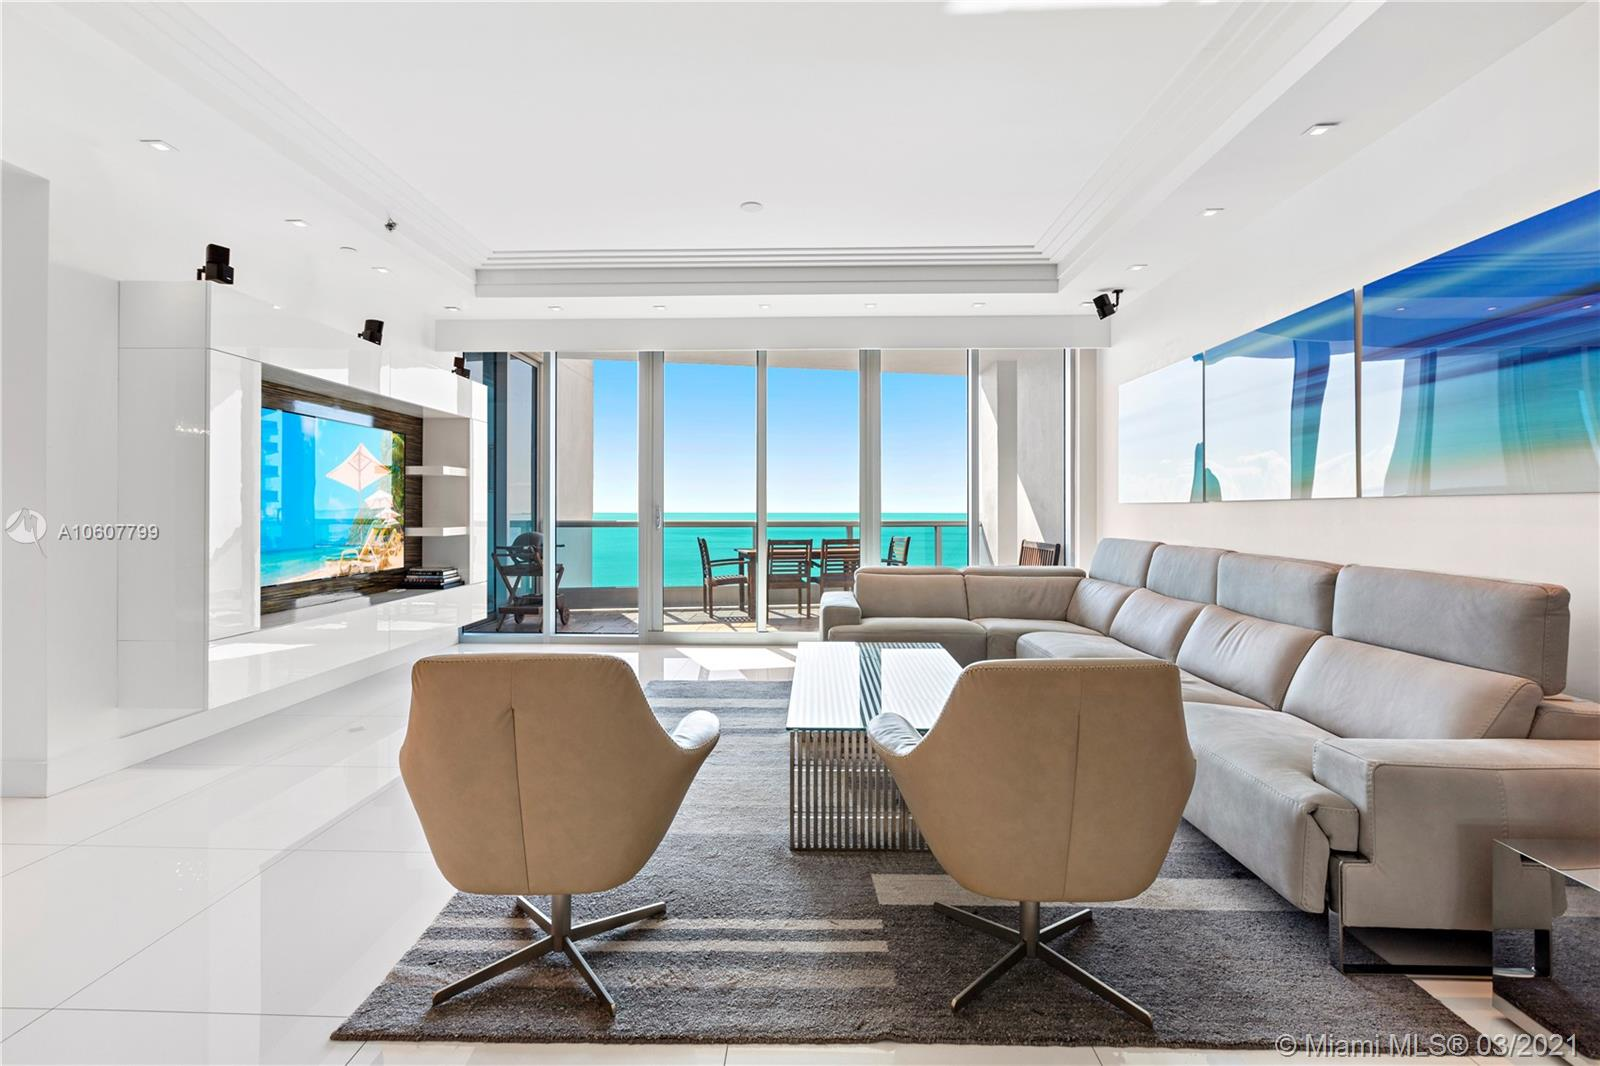 MODERN & MINIMALIST OPEN SPACES IN THIS COMPLETELY RENOVATED OCEANFRONT RESIDENCE PERFECT FOR ART COLLECTORS WITH FAMILIES! Enter Private Foyer into just under 4,000 SF of Contemporary Living w 10FT ceilings & Floorthru Views of Beach & City. Split Floorplan w Slabs of White Glass floors, Lacquered Zebrawood Doors & upgraded Lighting. Direct Beach Views from Eat-in Italian Kitchen w Miele Apps. Master Suite w His & Hers closets & Bath w White Lacquer floating Vanities, Marble Rain Shower w Steam, Spa Tub wrapped by textured walls. Comfortable loungey Media Rm + 2 private corner Guest Suites + Study overlooking City & Bay. 2 Terraces for Sunrise & Sunset Views! The Bath Club 5 Star Resort Amenities: Tennis Courts, Full Service Pool & Beach Club, Gym + Spa, Concierge, 24-hr Security + Valet.